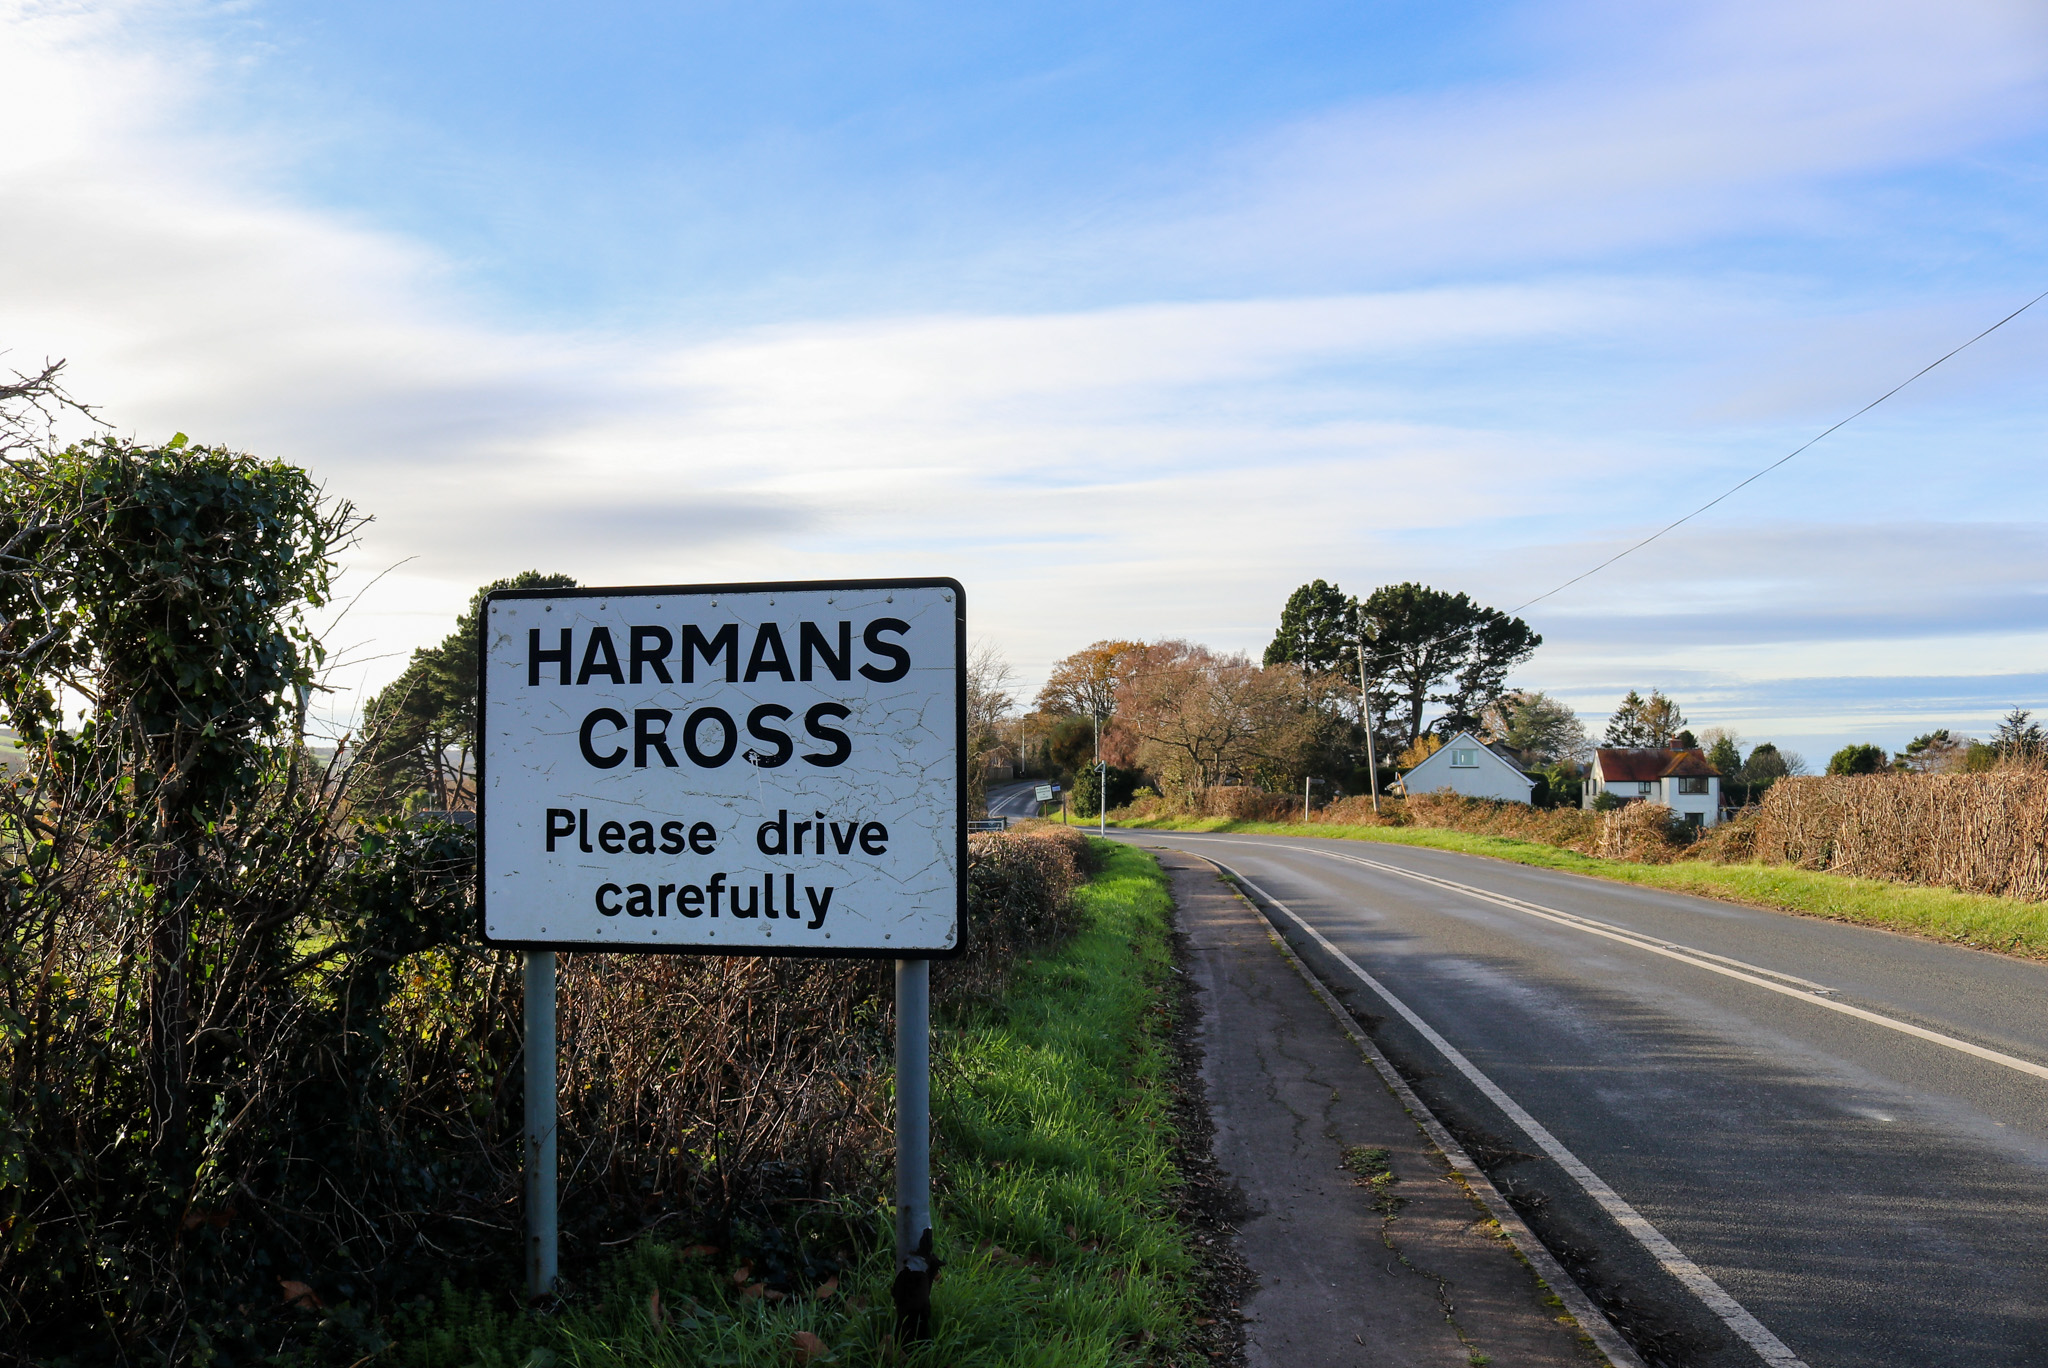 Sign on the road at the entrance to Harman's Cross village